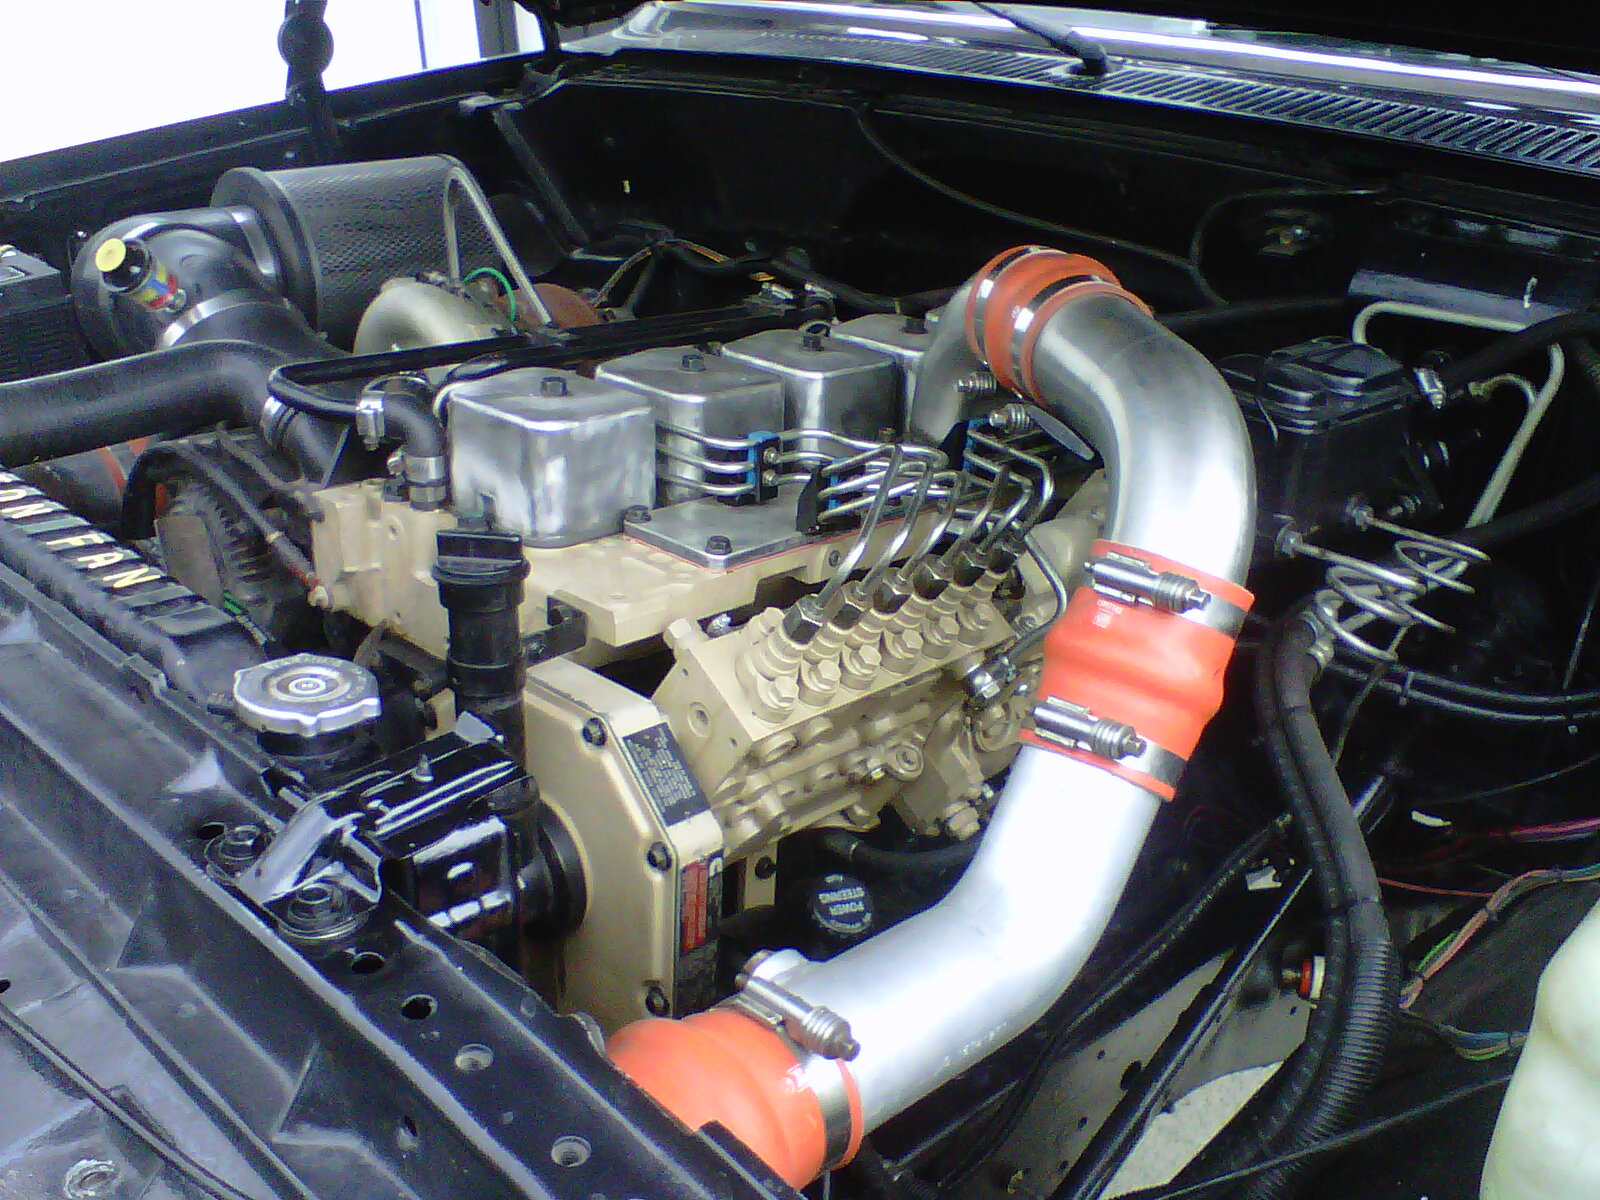 Show Off Your 12 Valves From 1st Gen To 2nd Gen Lets See Them!